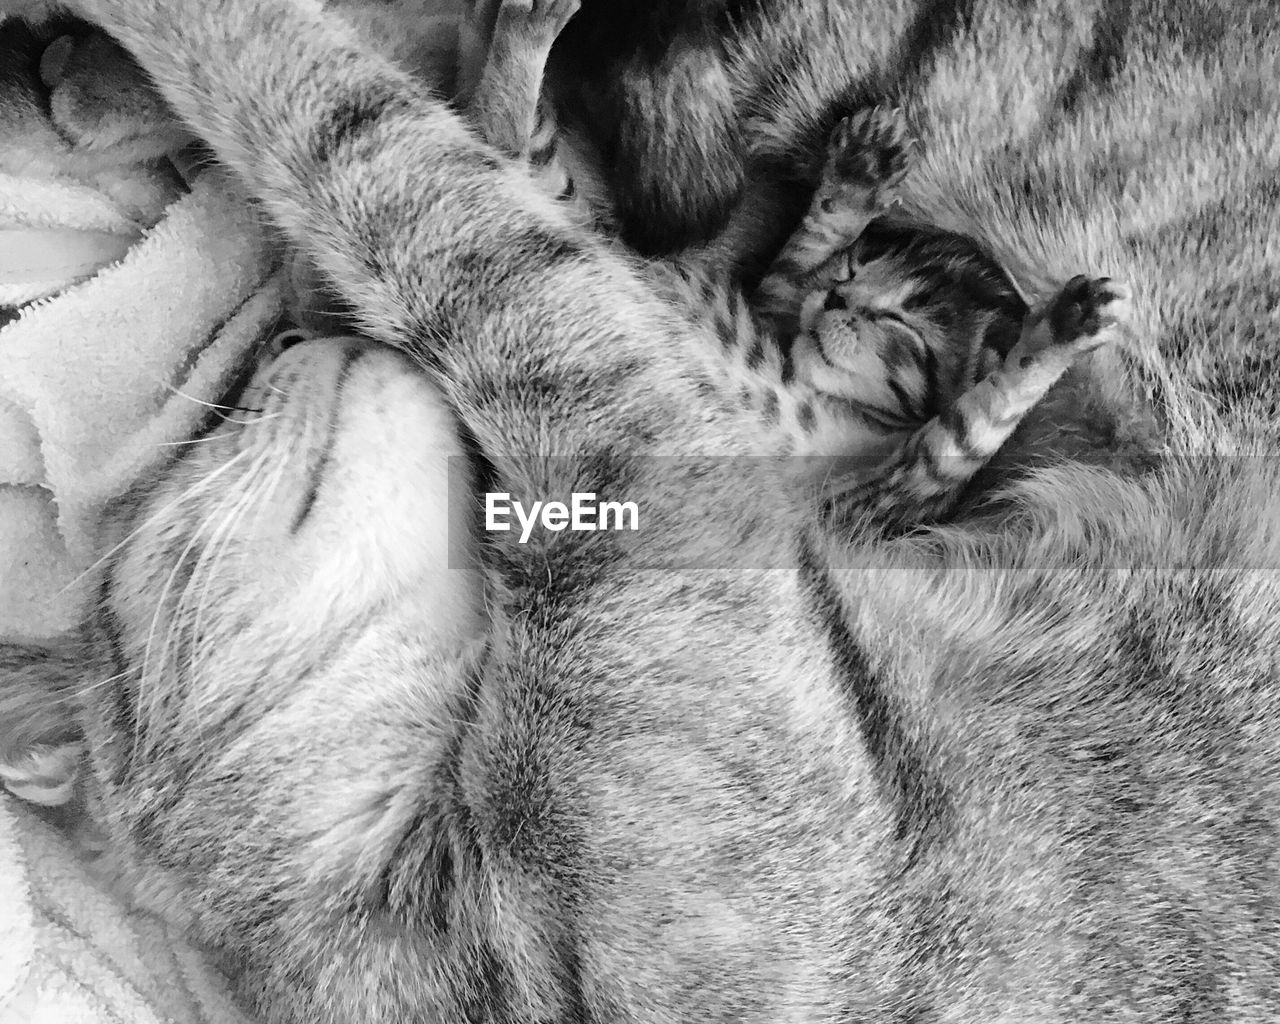 animal, mammal, animal themes, domestic animals, domestic, pets, one animal, relaxation, vertebrate, cat, close-up, no people, sleeping, feline, animal body part, domestic cat, eyes closed, indoors, young animal, animal head, whisker